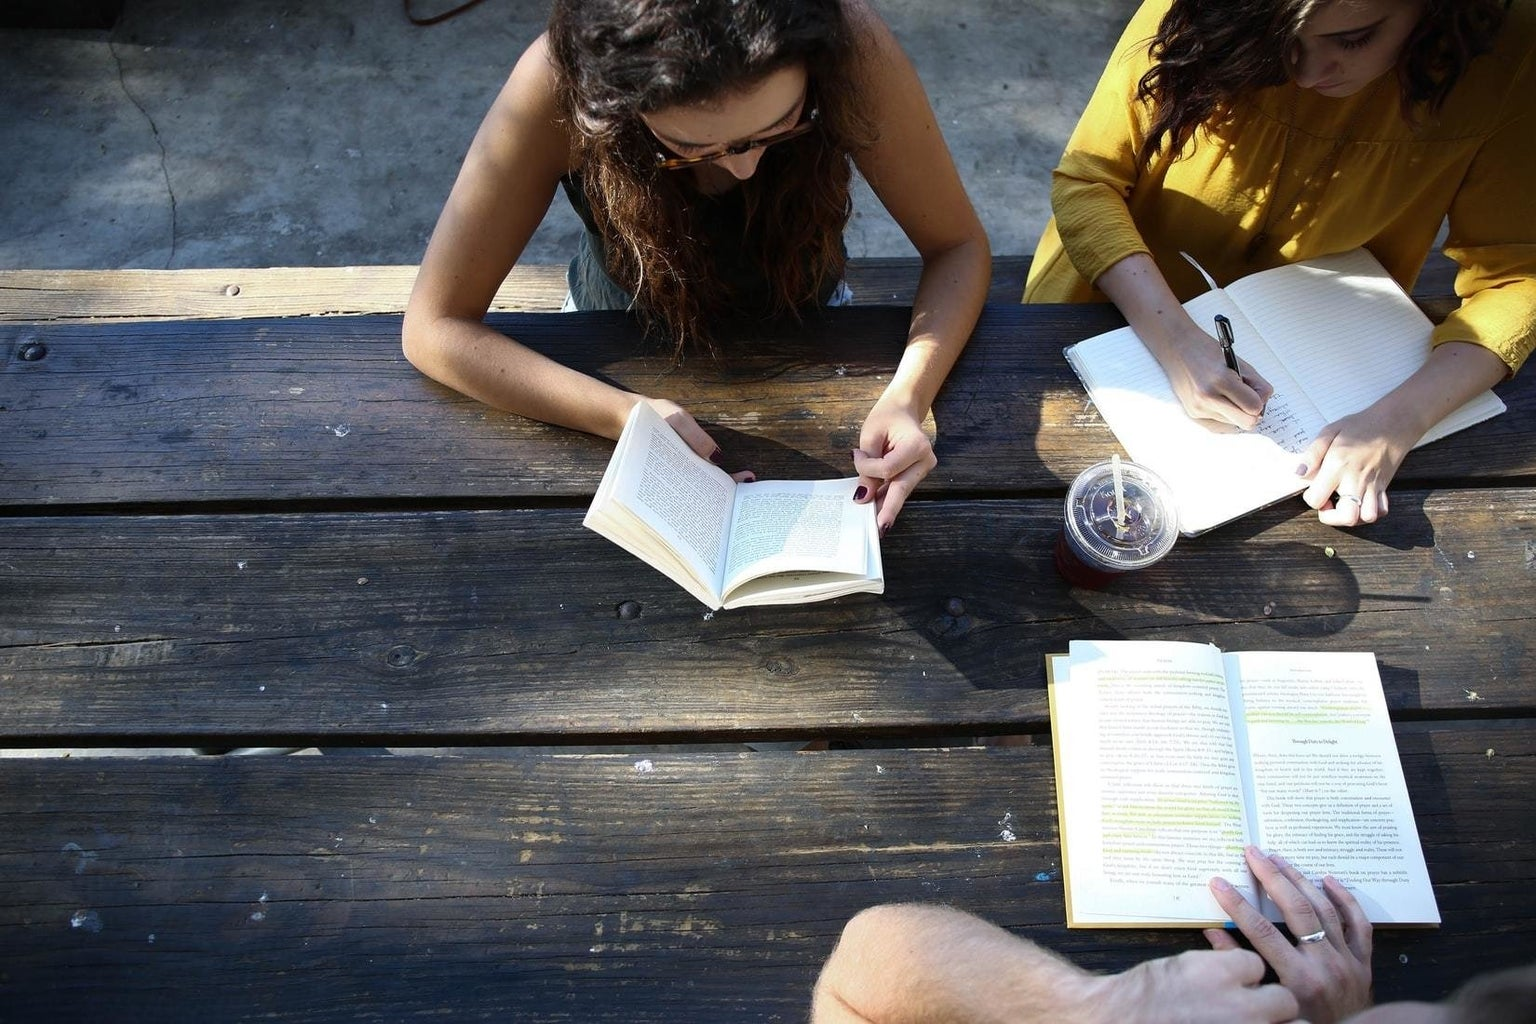 group of people reading and studying together at a table